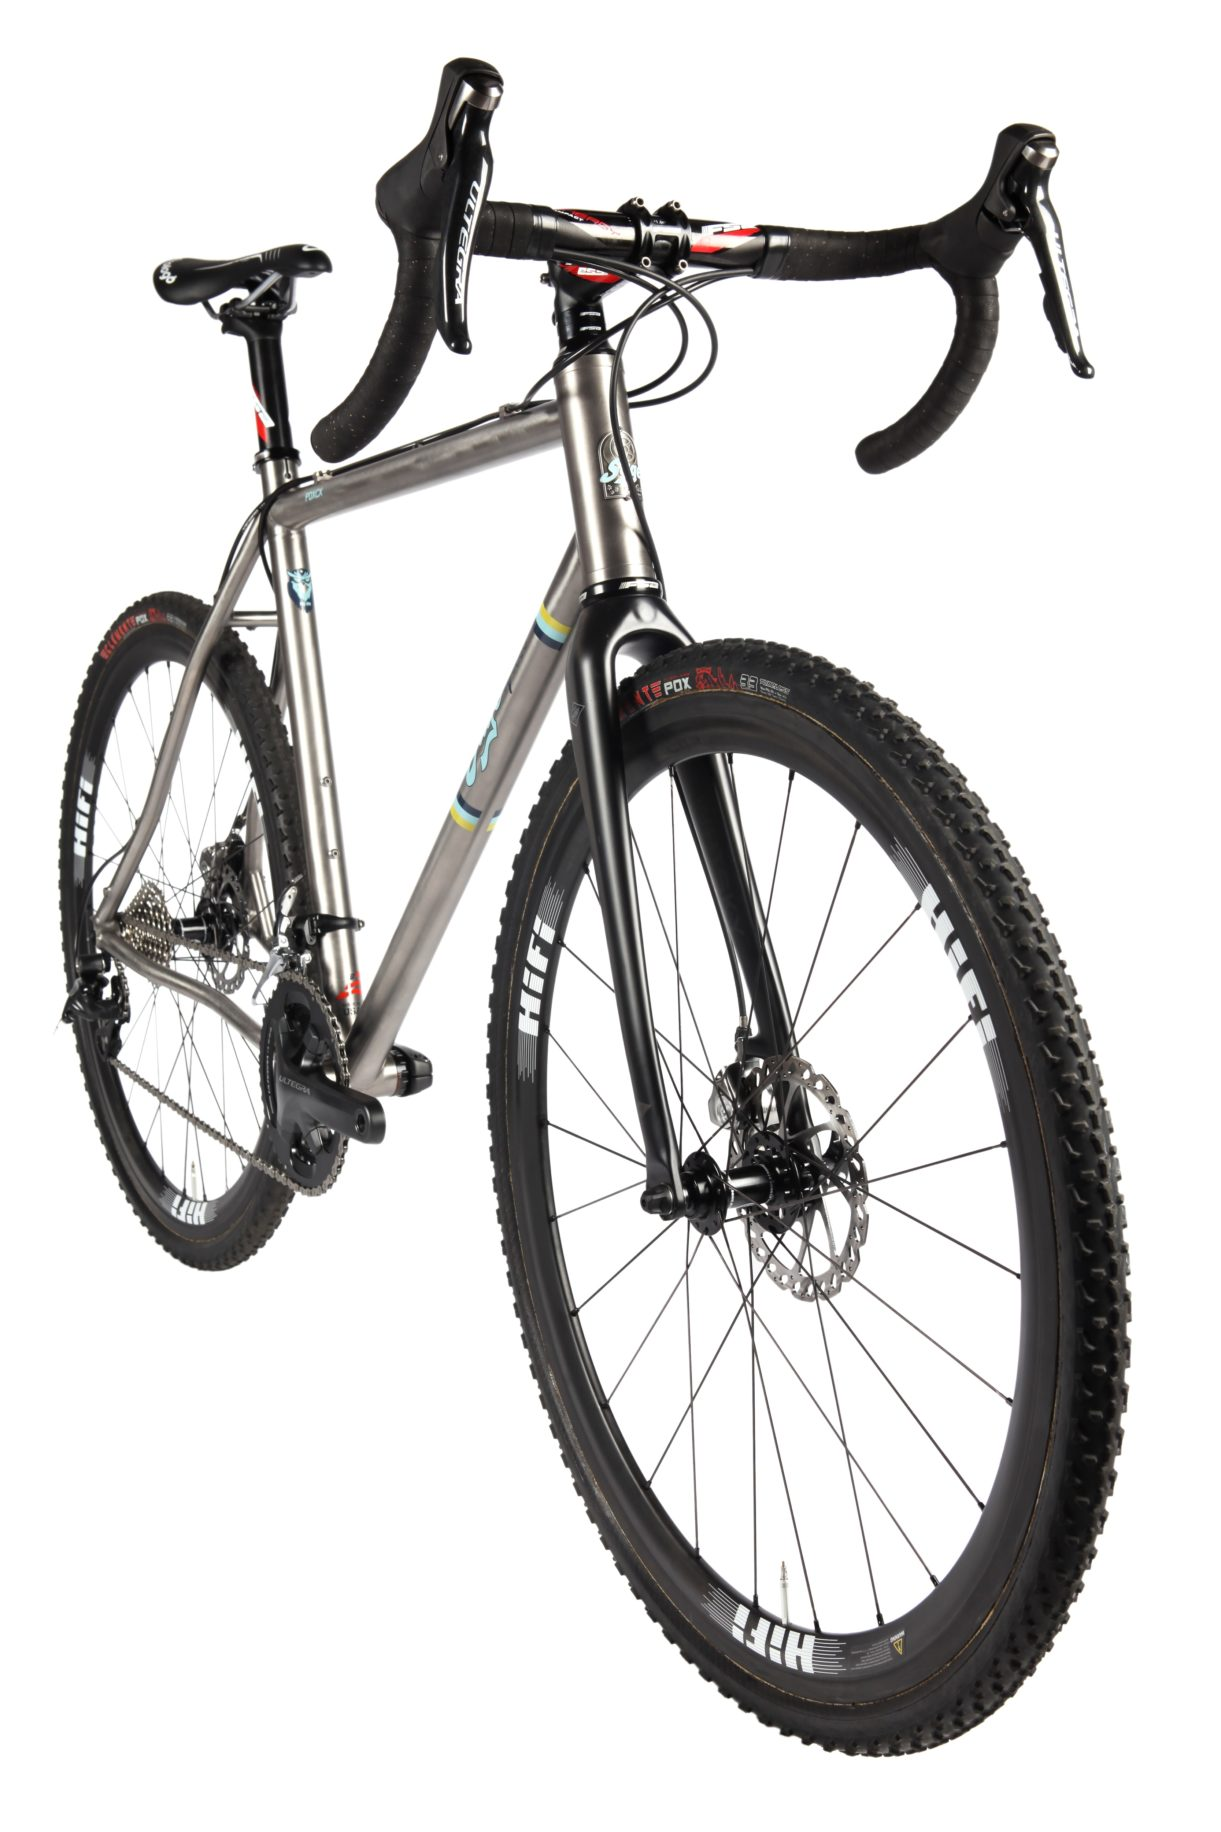 Sage Cycles PDXCX Titanium Cyclocross Bike Now Available | Bike ...